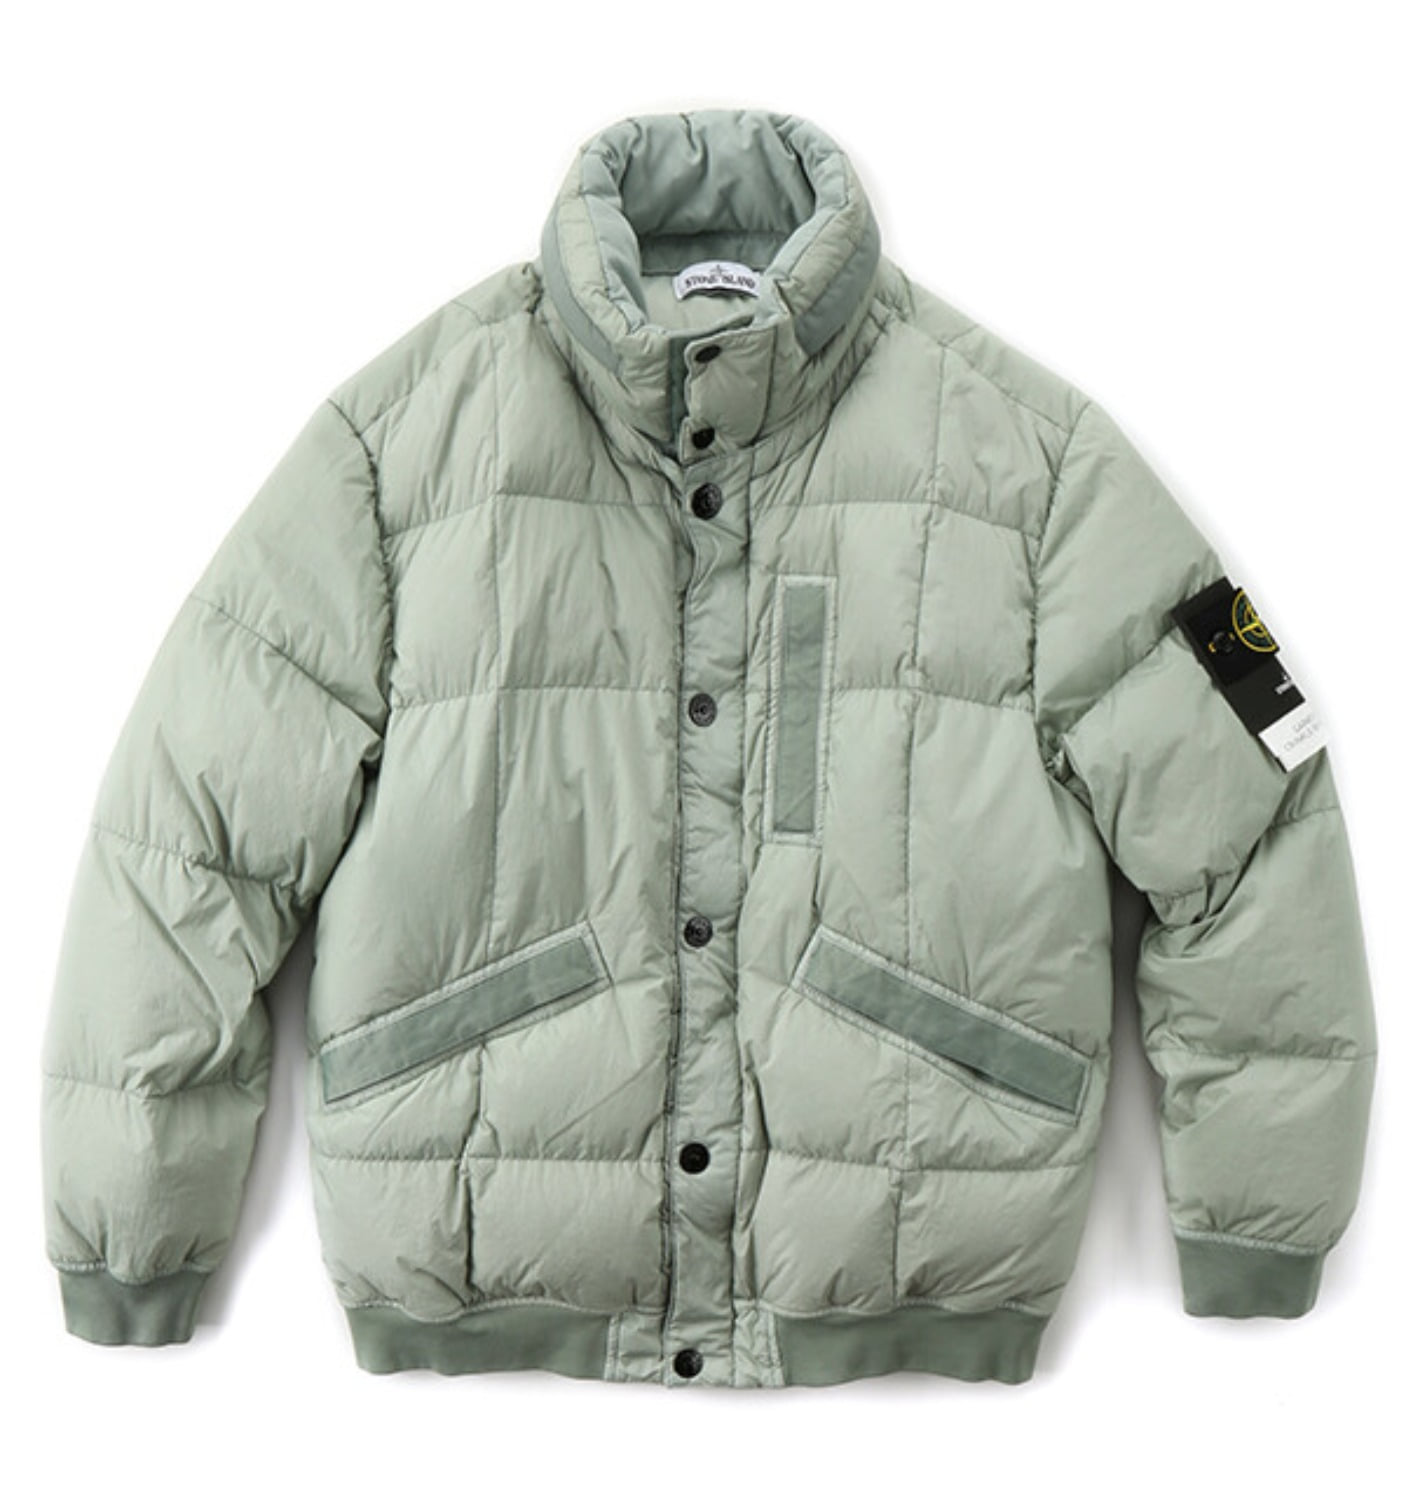 GARMENT DYED CRINKLE REPS NY DOWN JACKET POLVERE